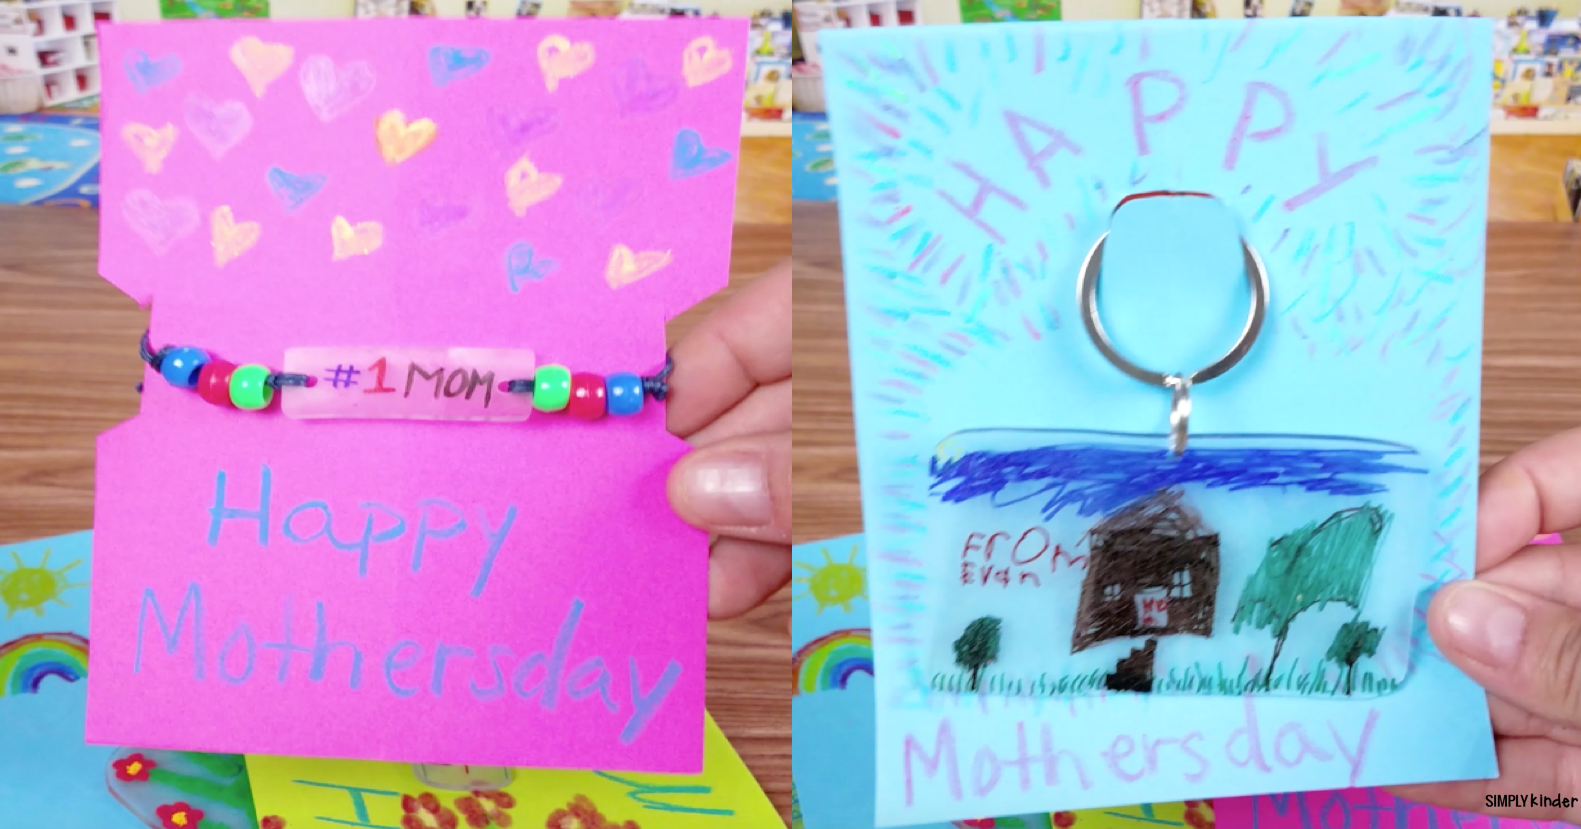 Five Shrinky Dinks Keychain Projects